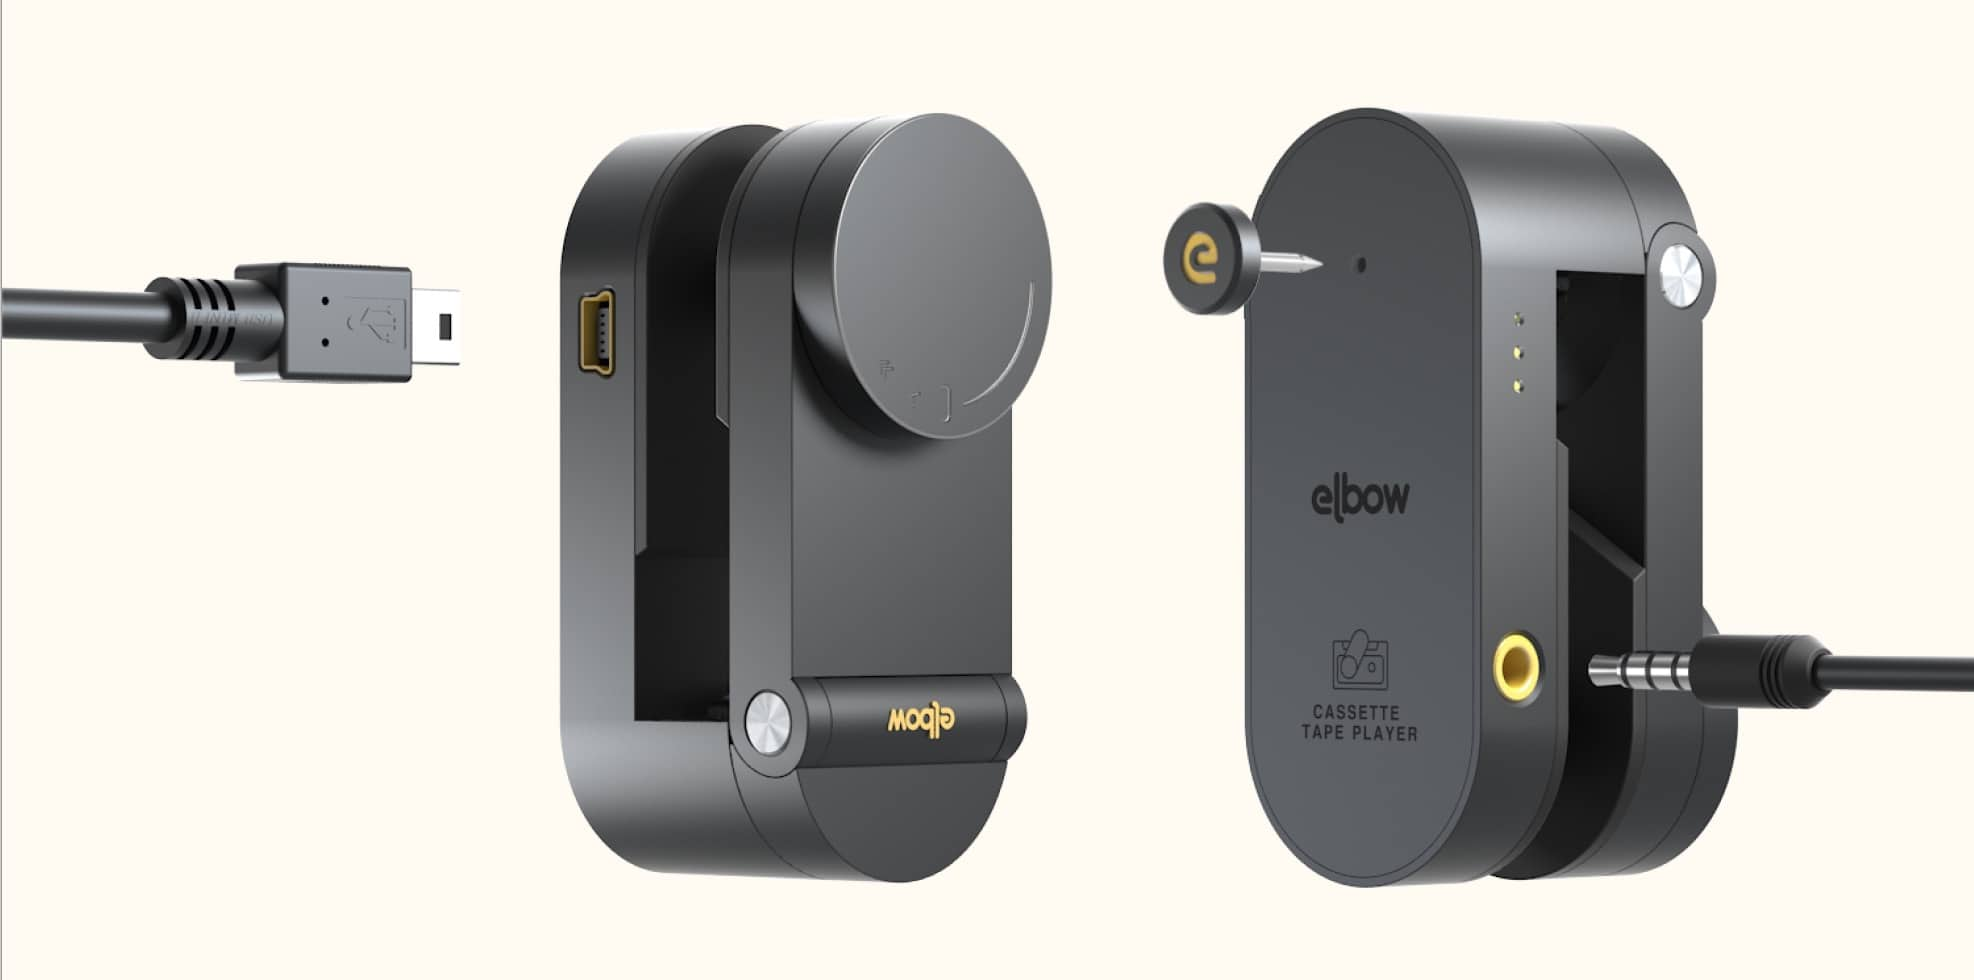 Introducing Elbow The New Walkman Cassette Player